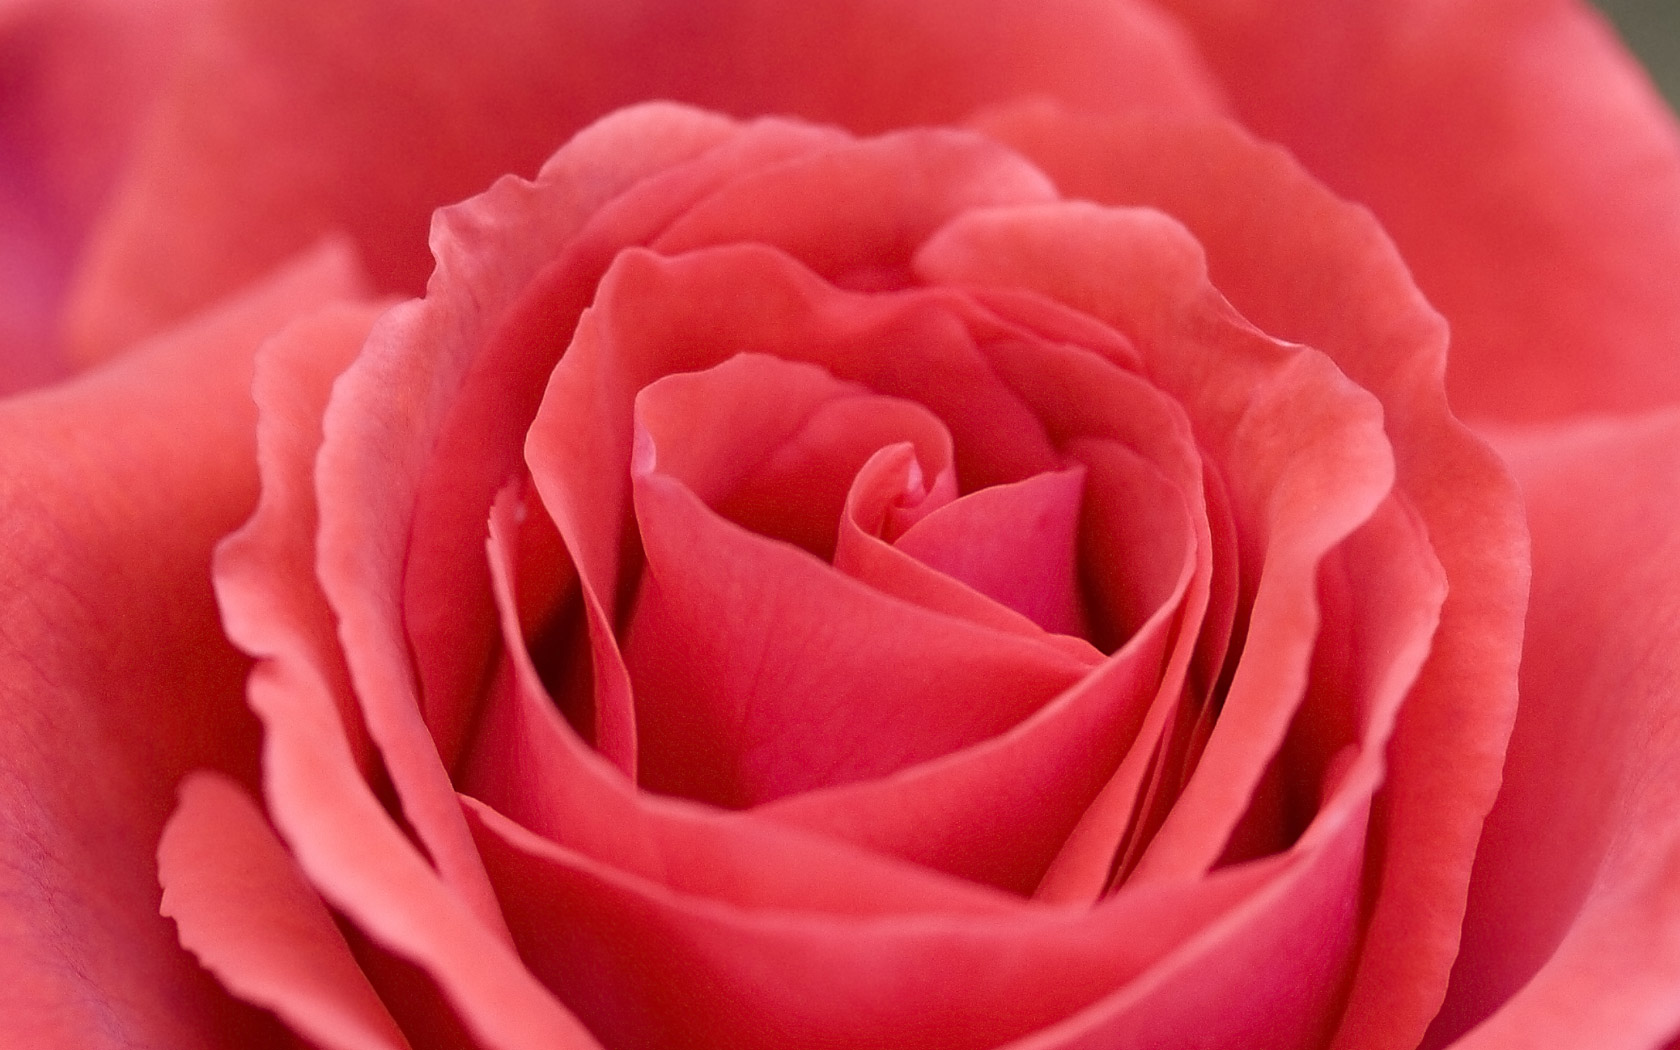 Desktop background of a beautiful large soft red rose bloom 1680x1050